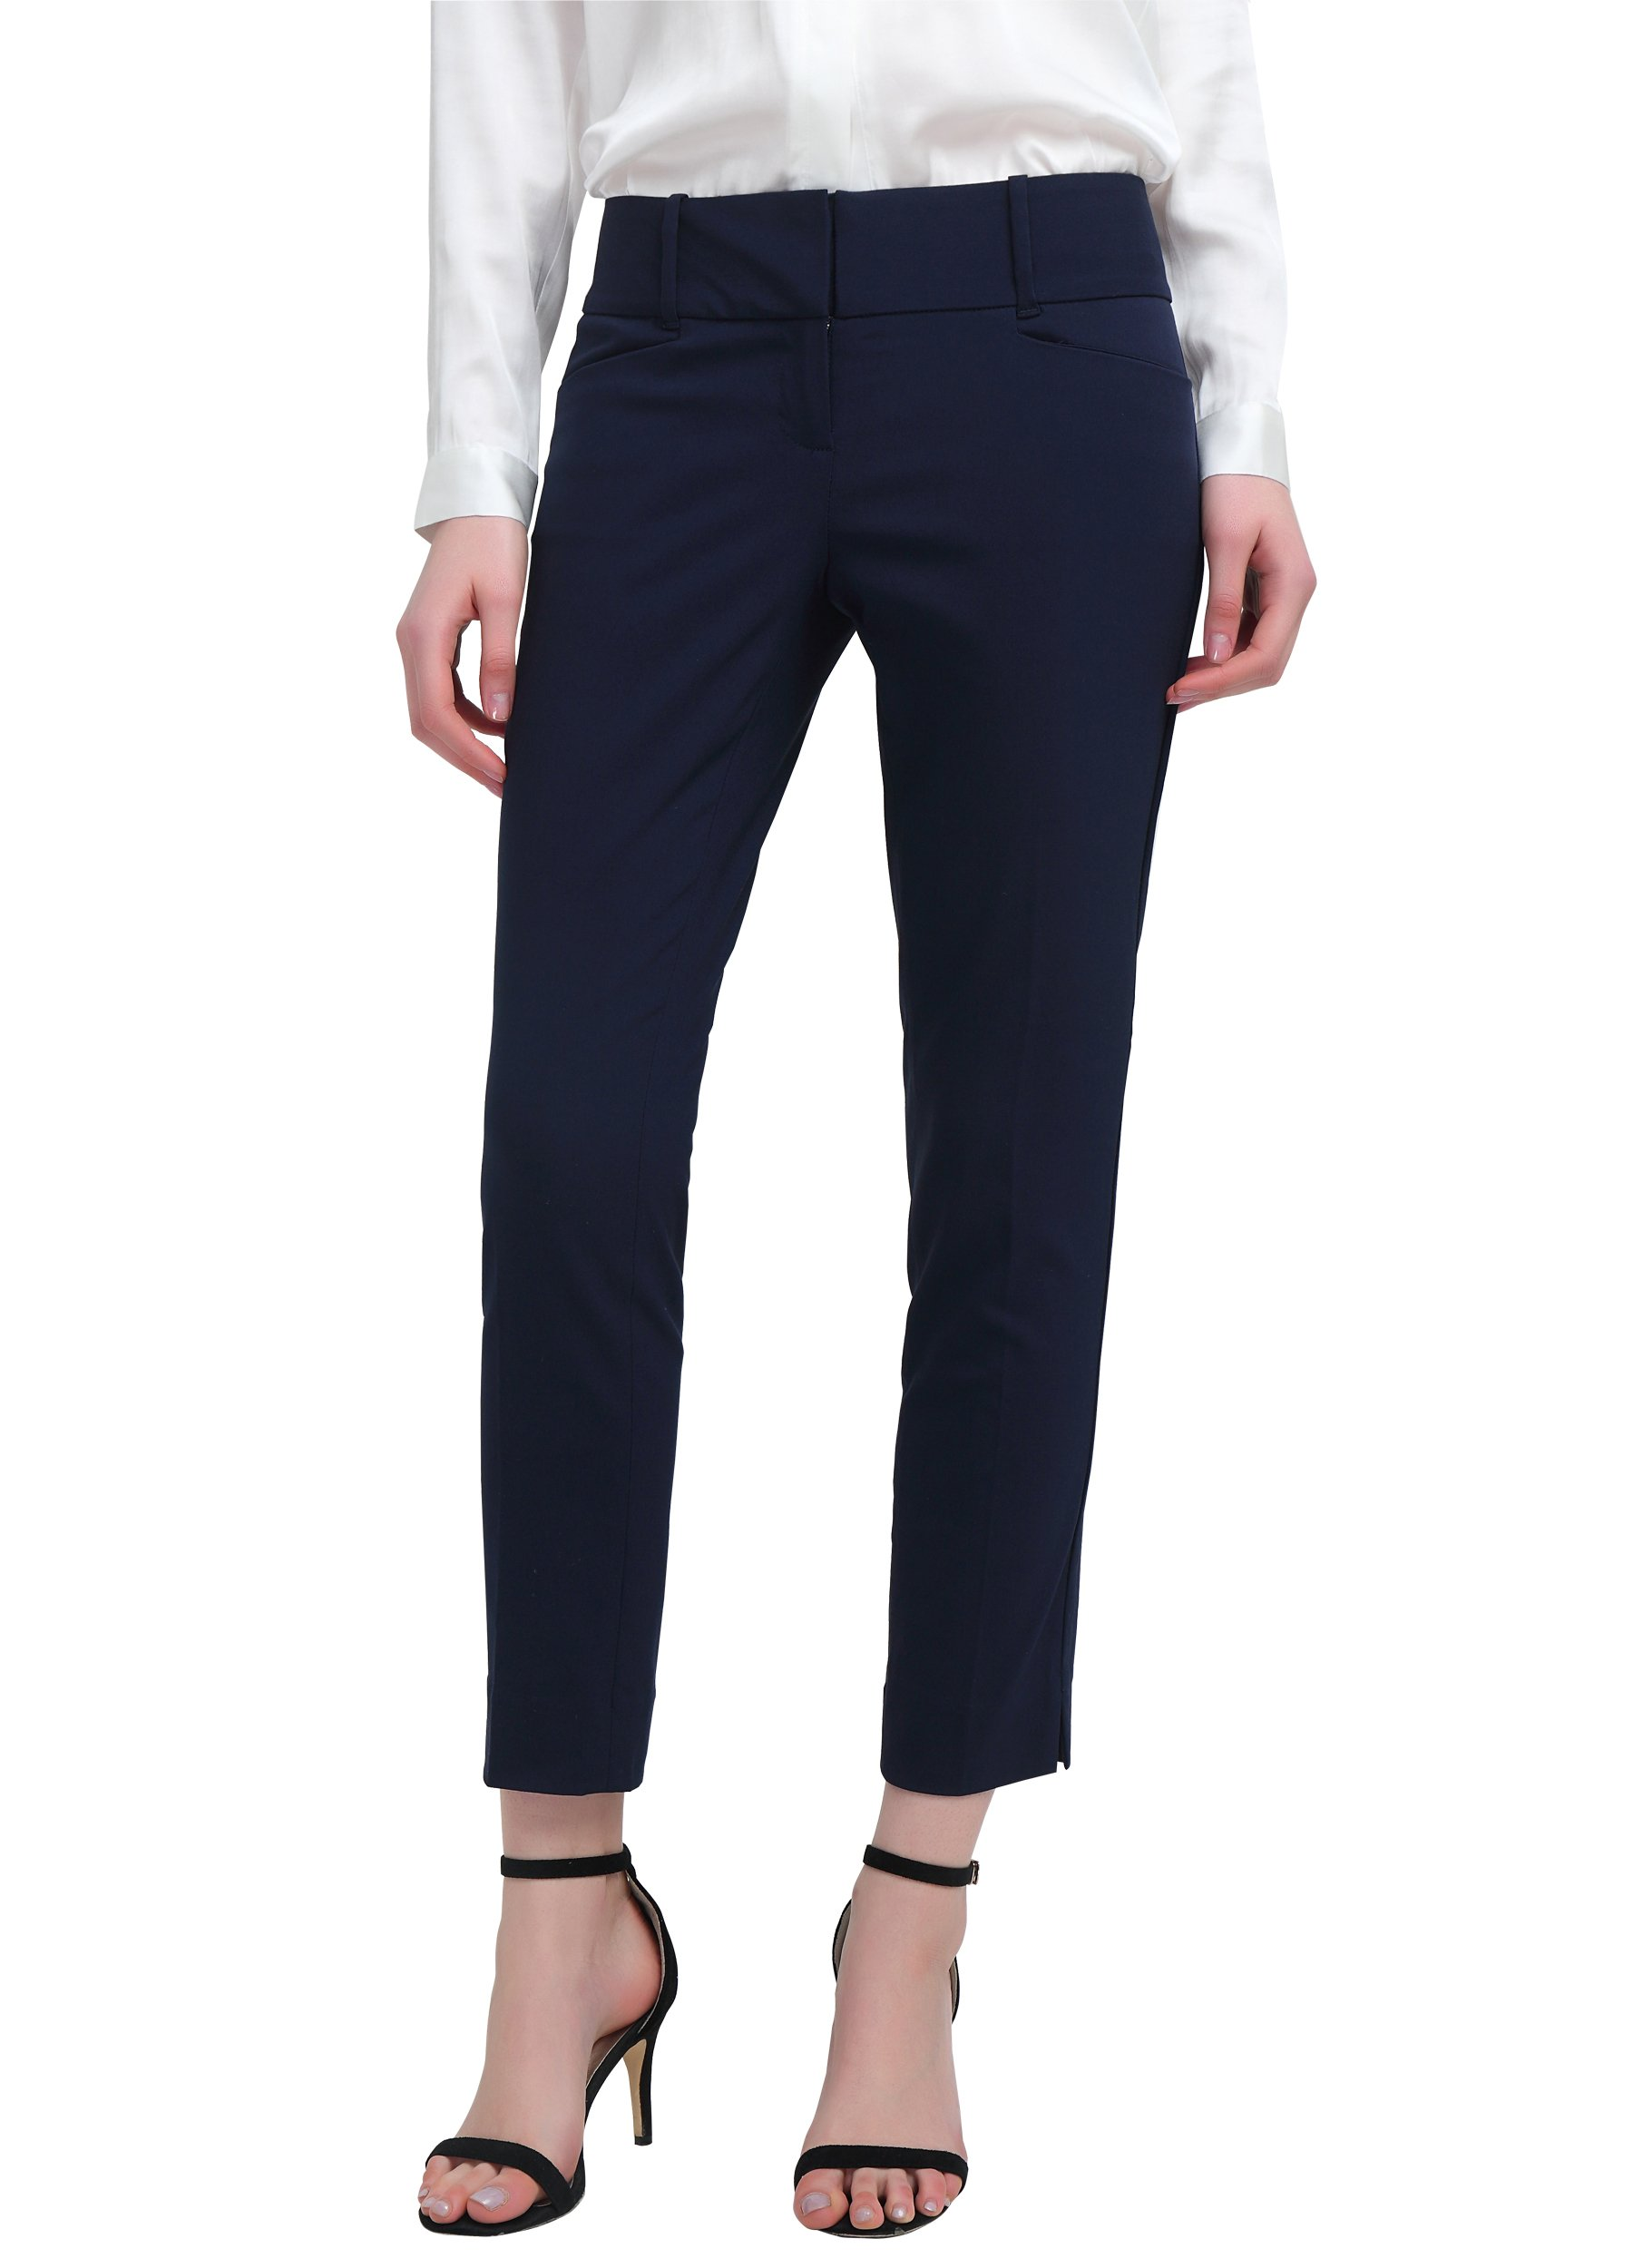 YTUIEKY Women's Stretch Capri Casual Work Ankle Pants Navy